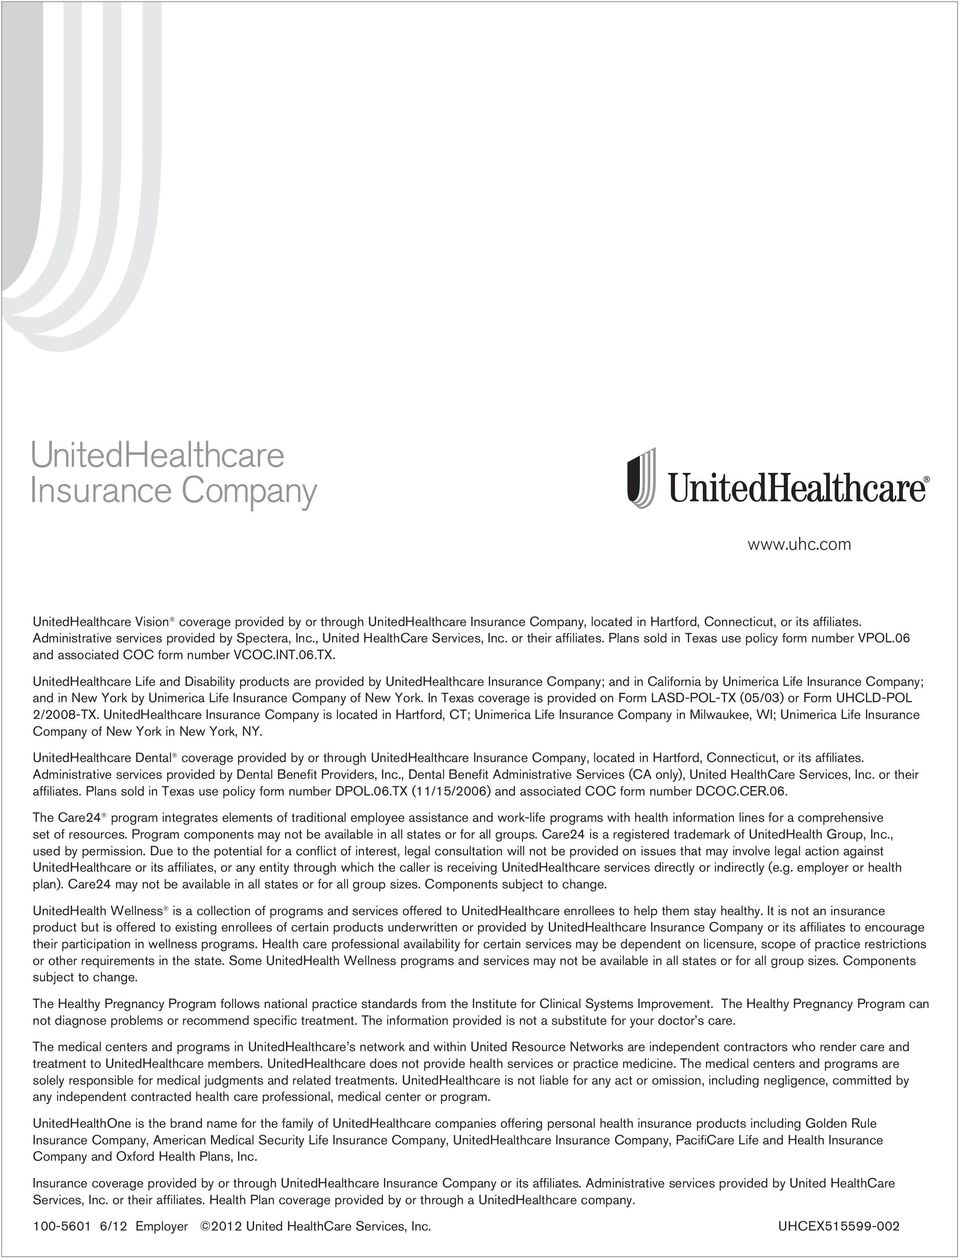 UnitedHealthcare Life and Disability products are provided by UnitedHealthcare Insurance Company; and in California by Unimerica Life Insurance Company; and in New York by Unimerica Life Insurance